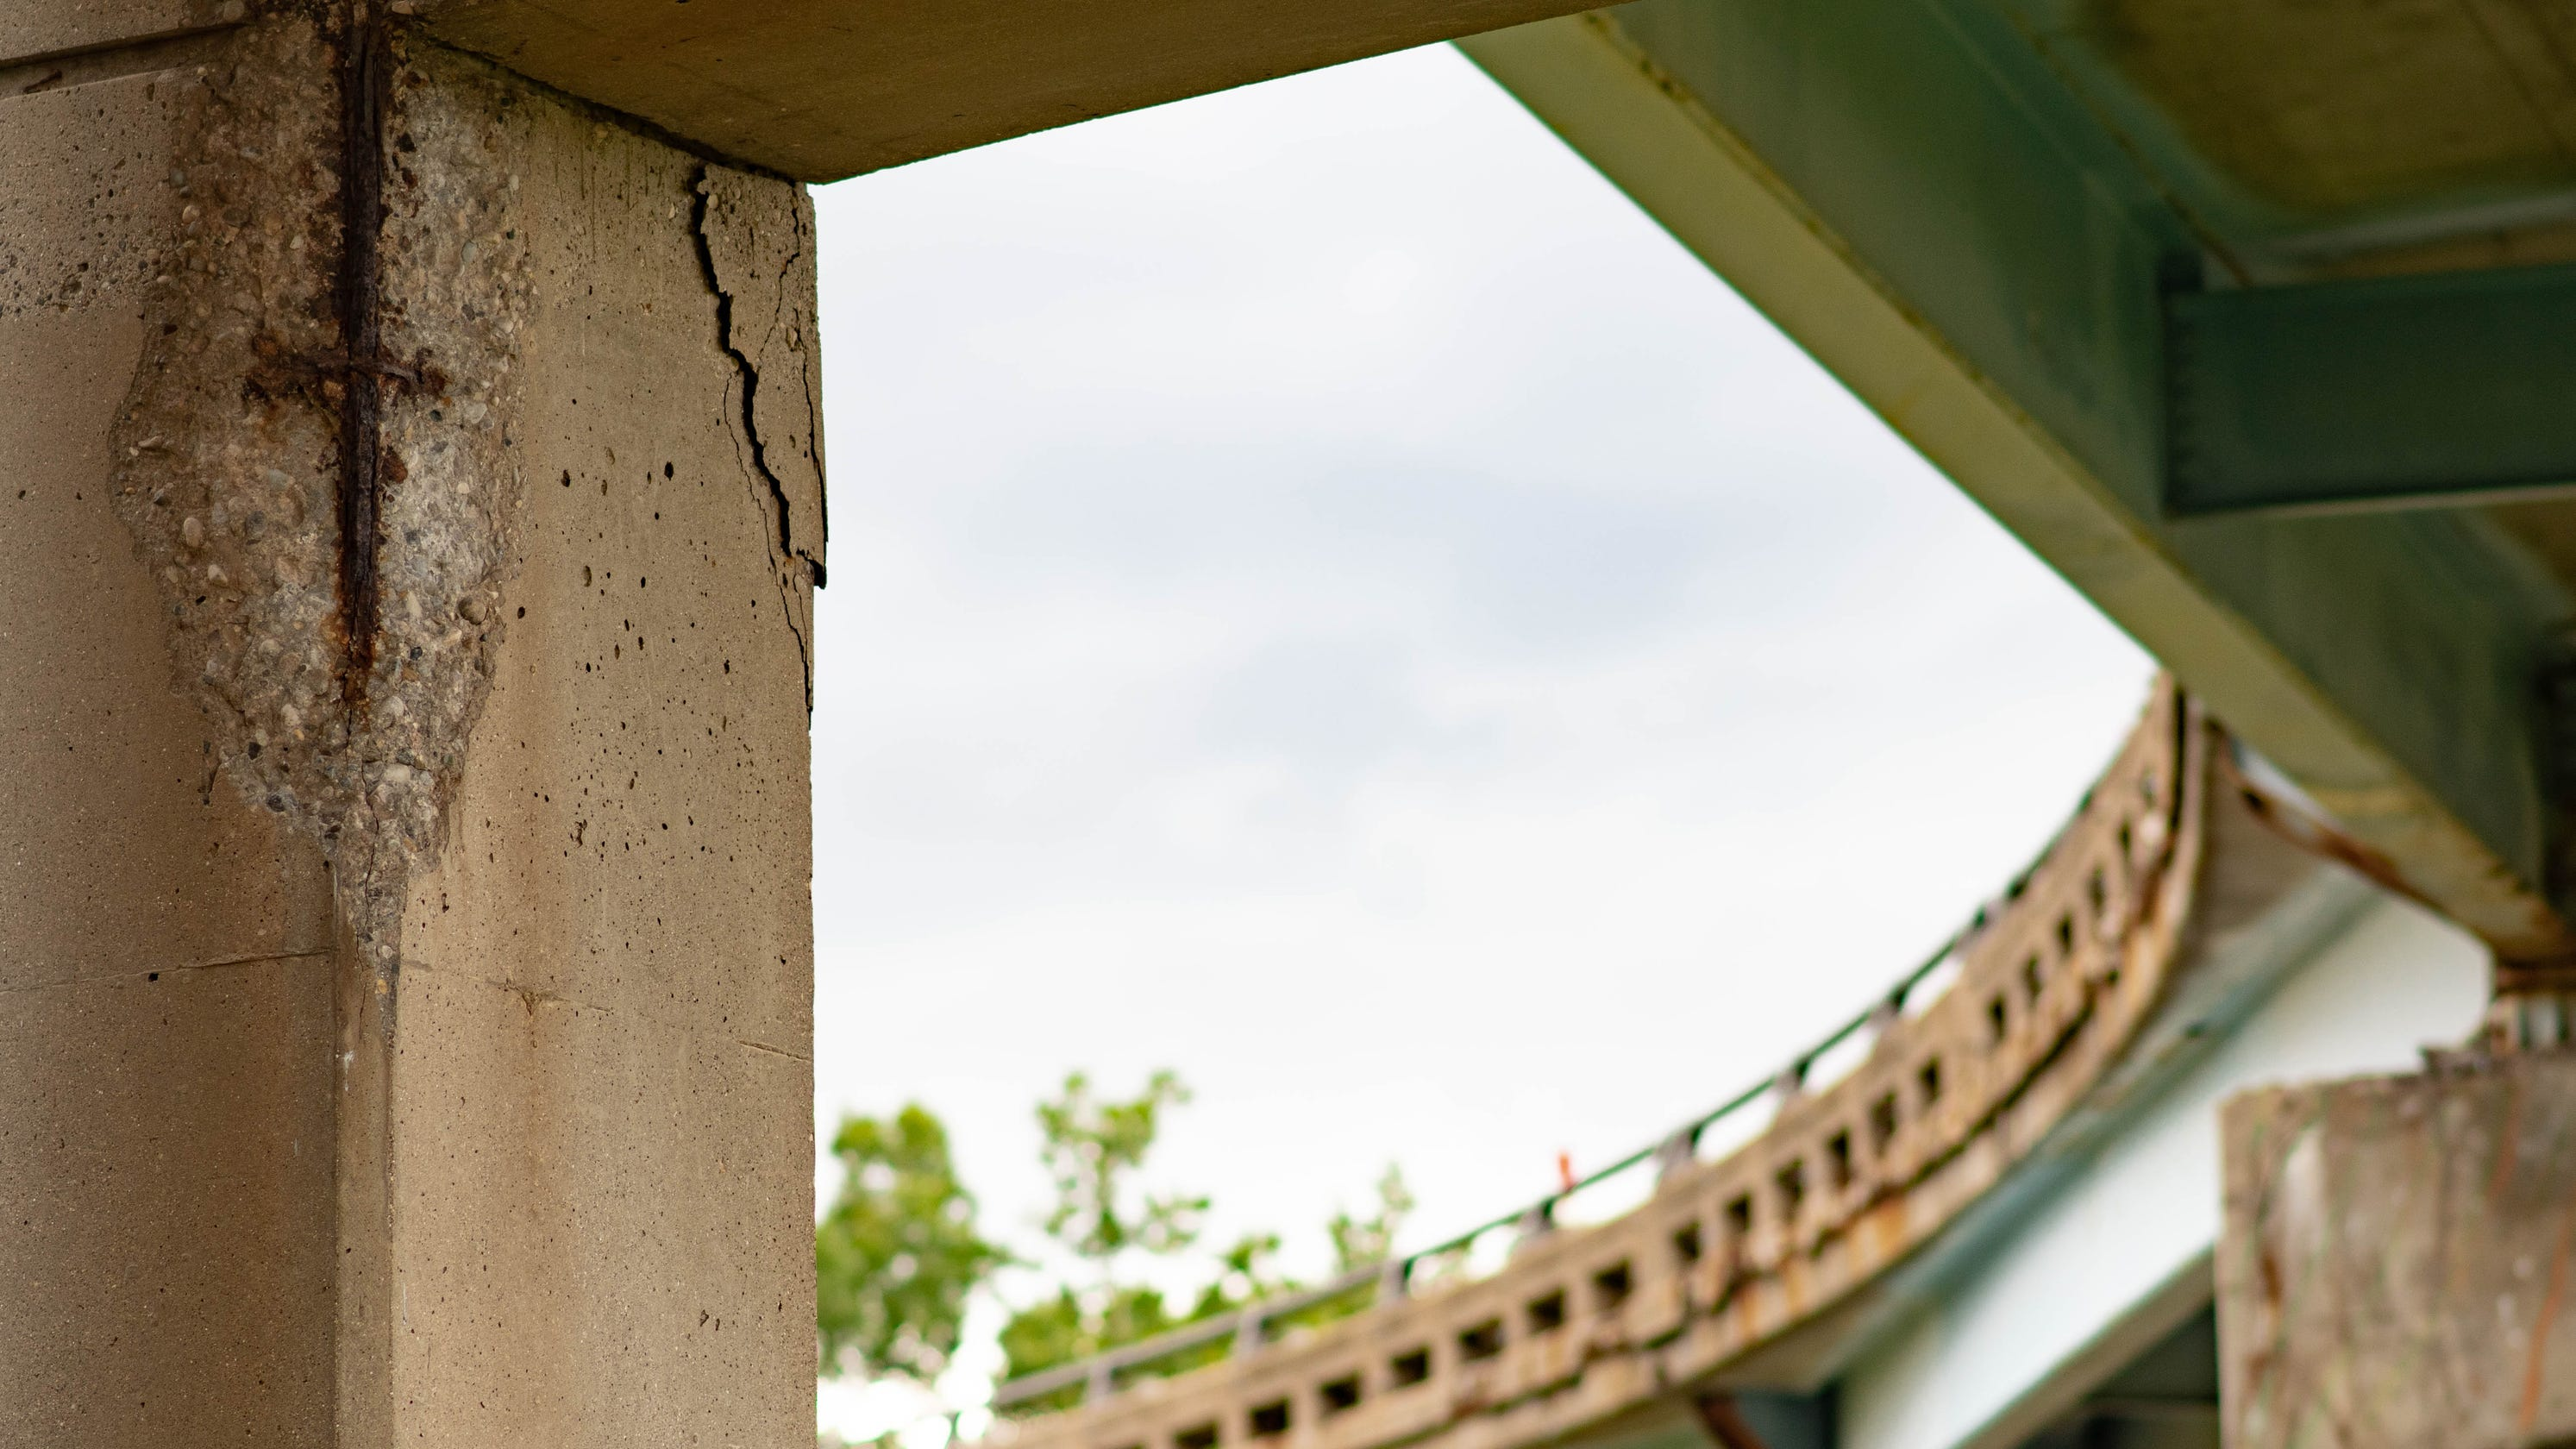 Bad bridges: Conditions in Greater Lansing worse than state